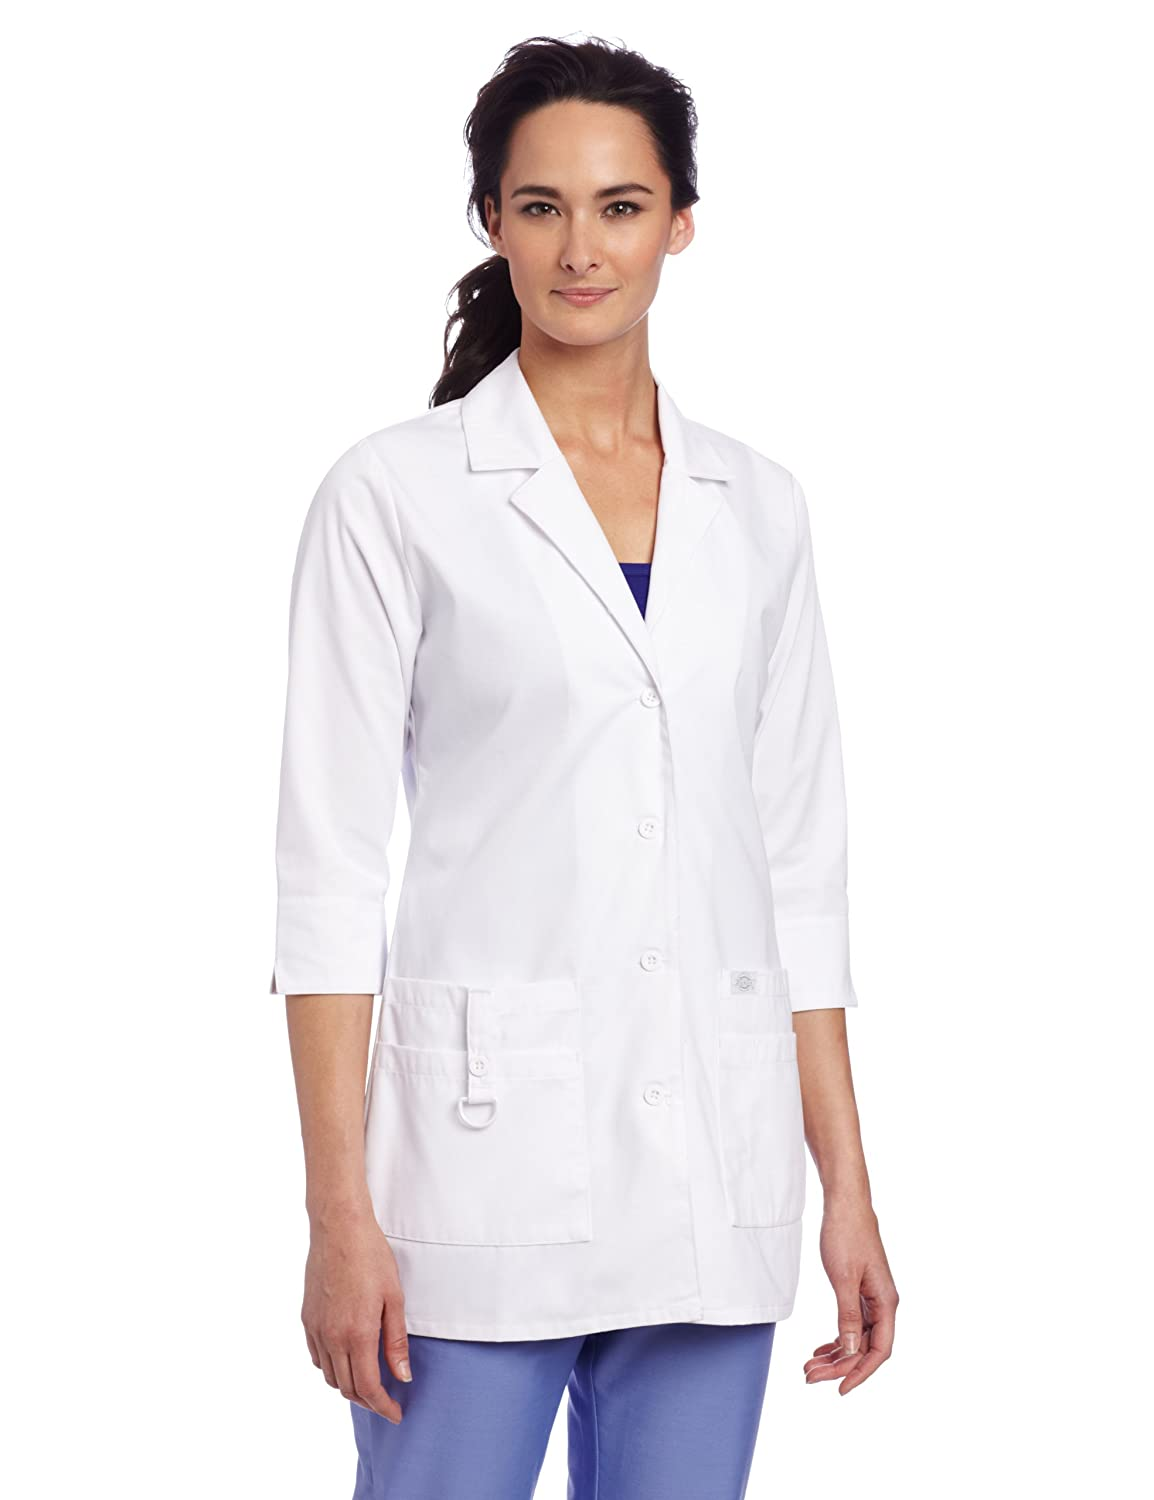 Short White Lab Coat